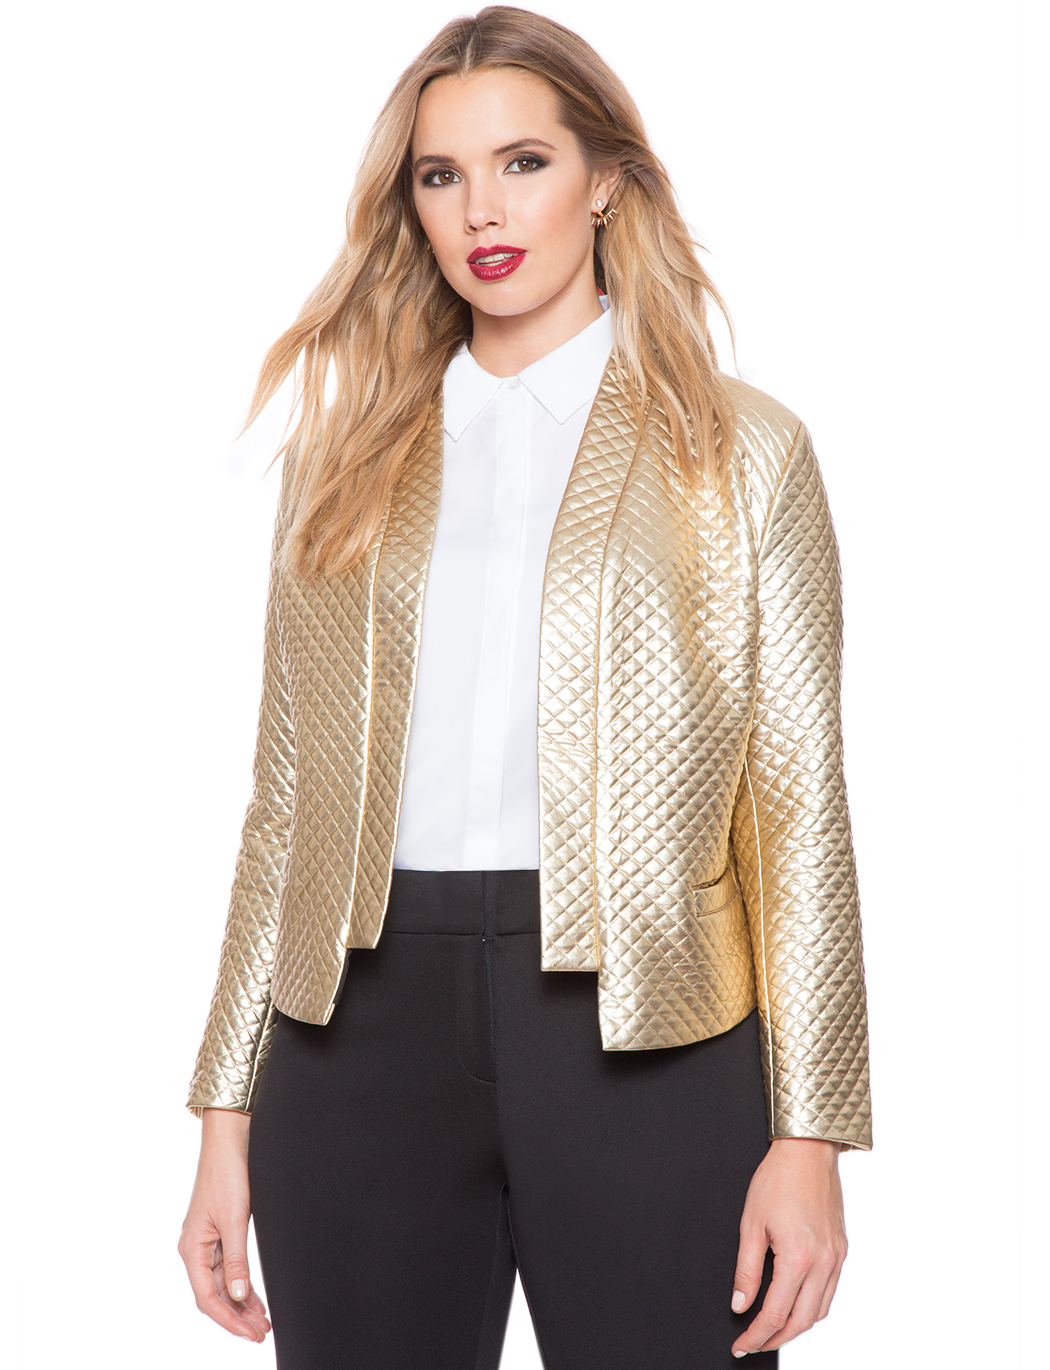 Quilted Metallic Jacket | Women's Plus Size Coats   Jackets | ELOQUII